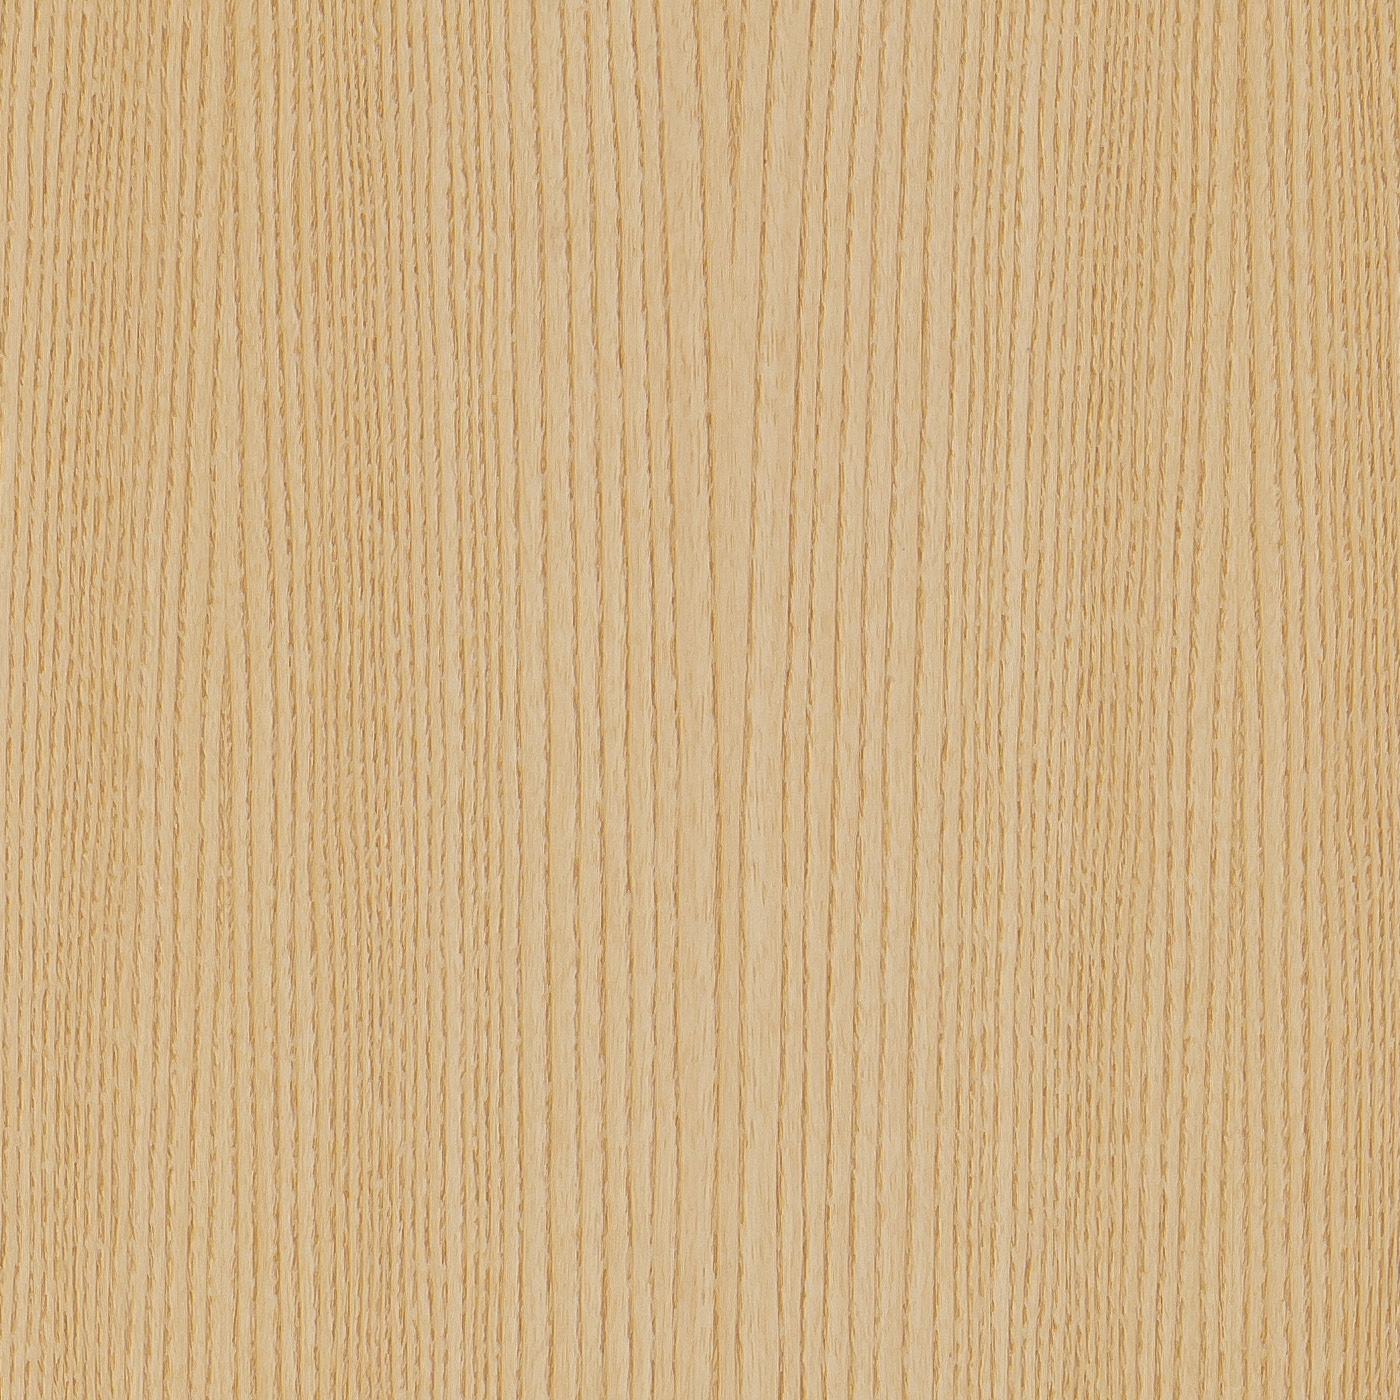 983 Golden Oak Laminate Countertops